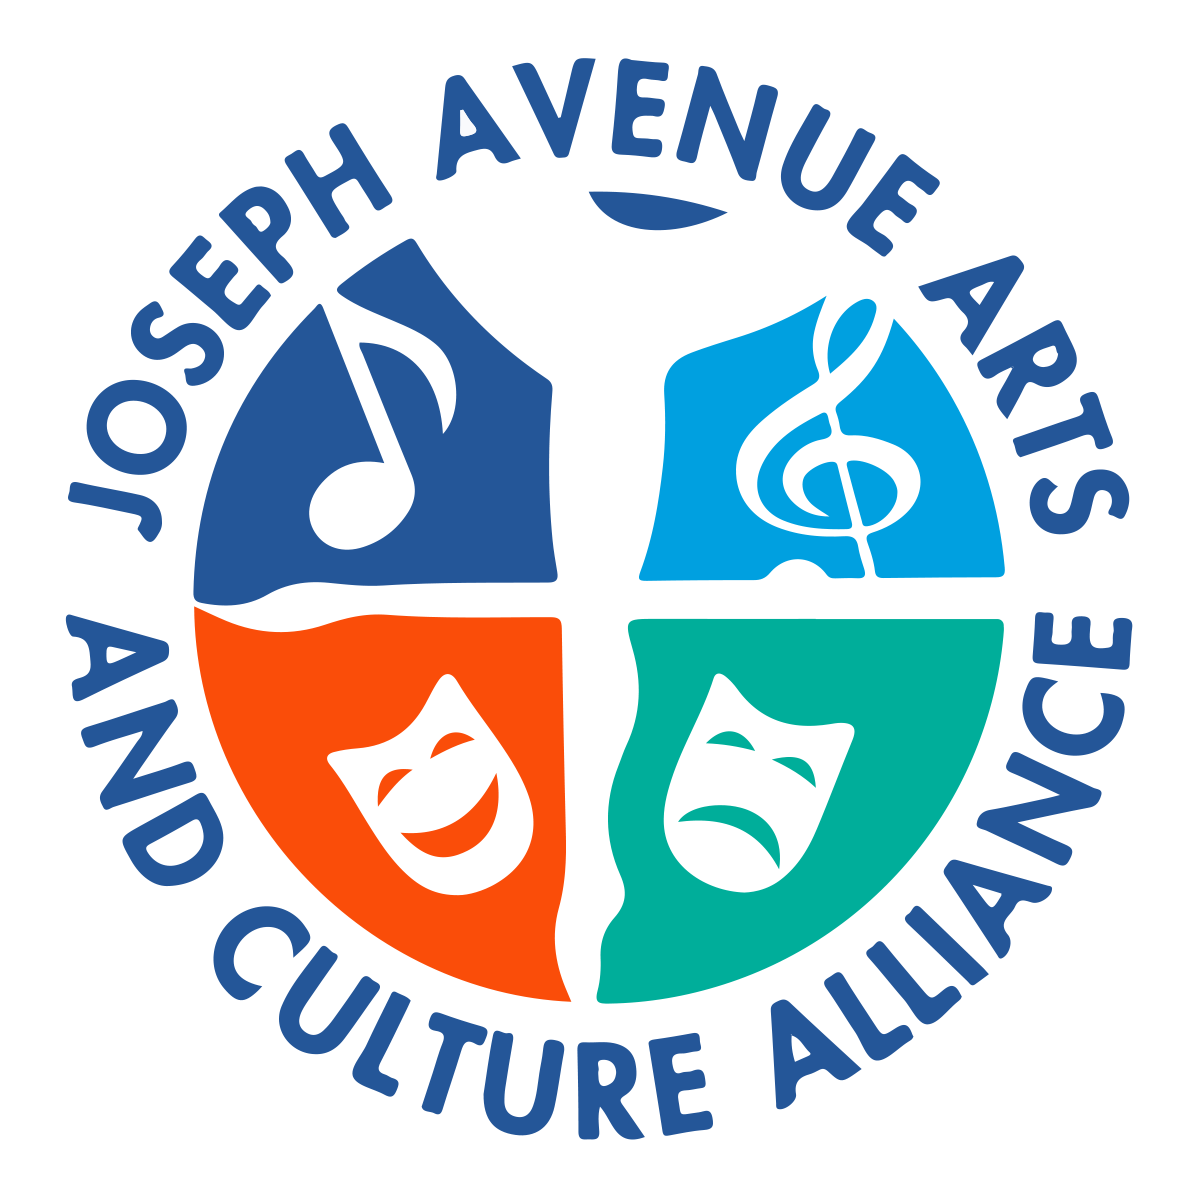 Joseph Avenue Arts and Culture Alliance presents: Catapulting Creations! Part of the 2021 KeyBank Rochester Fringe Festival